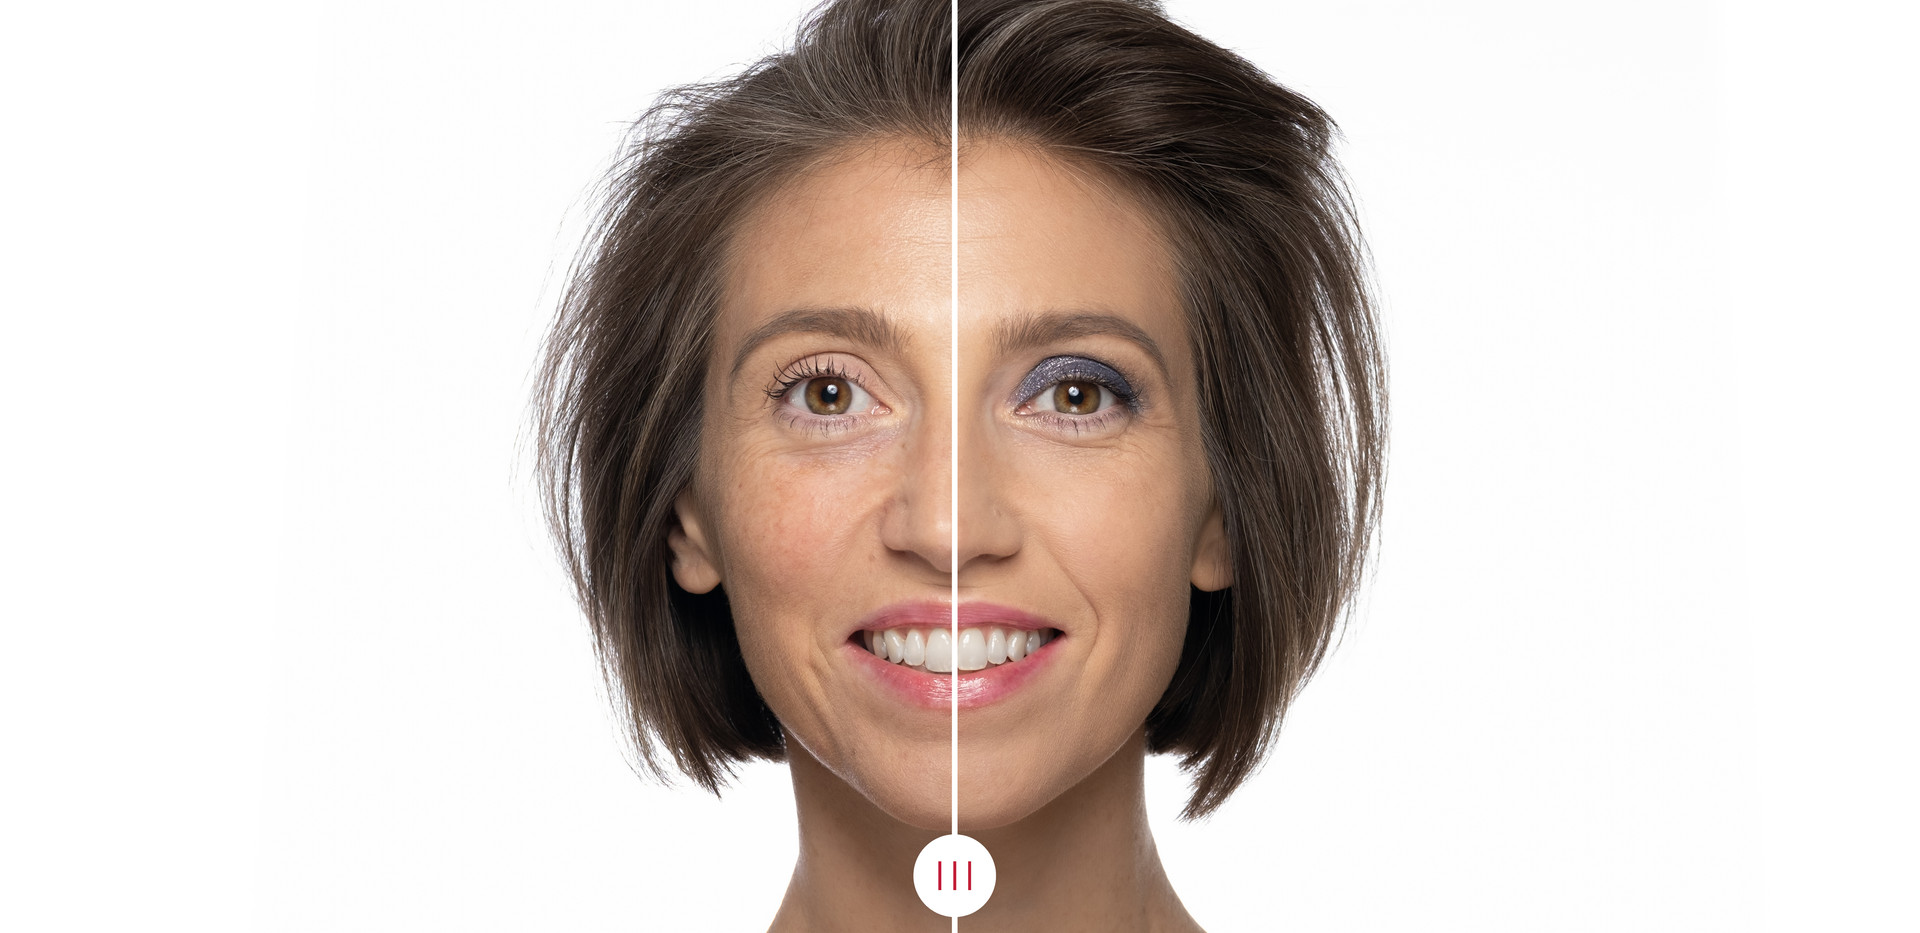 CLARINS VIRTUAL TRY ON